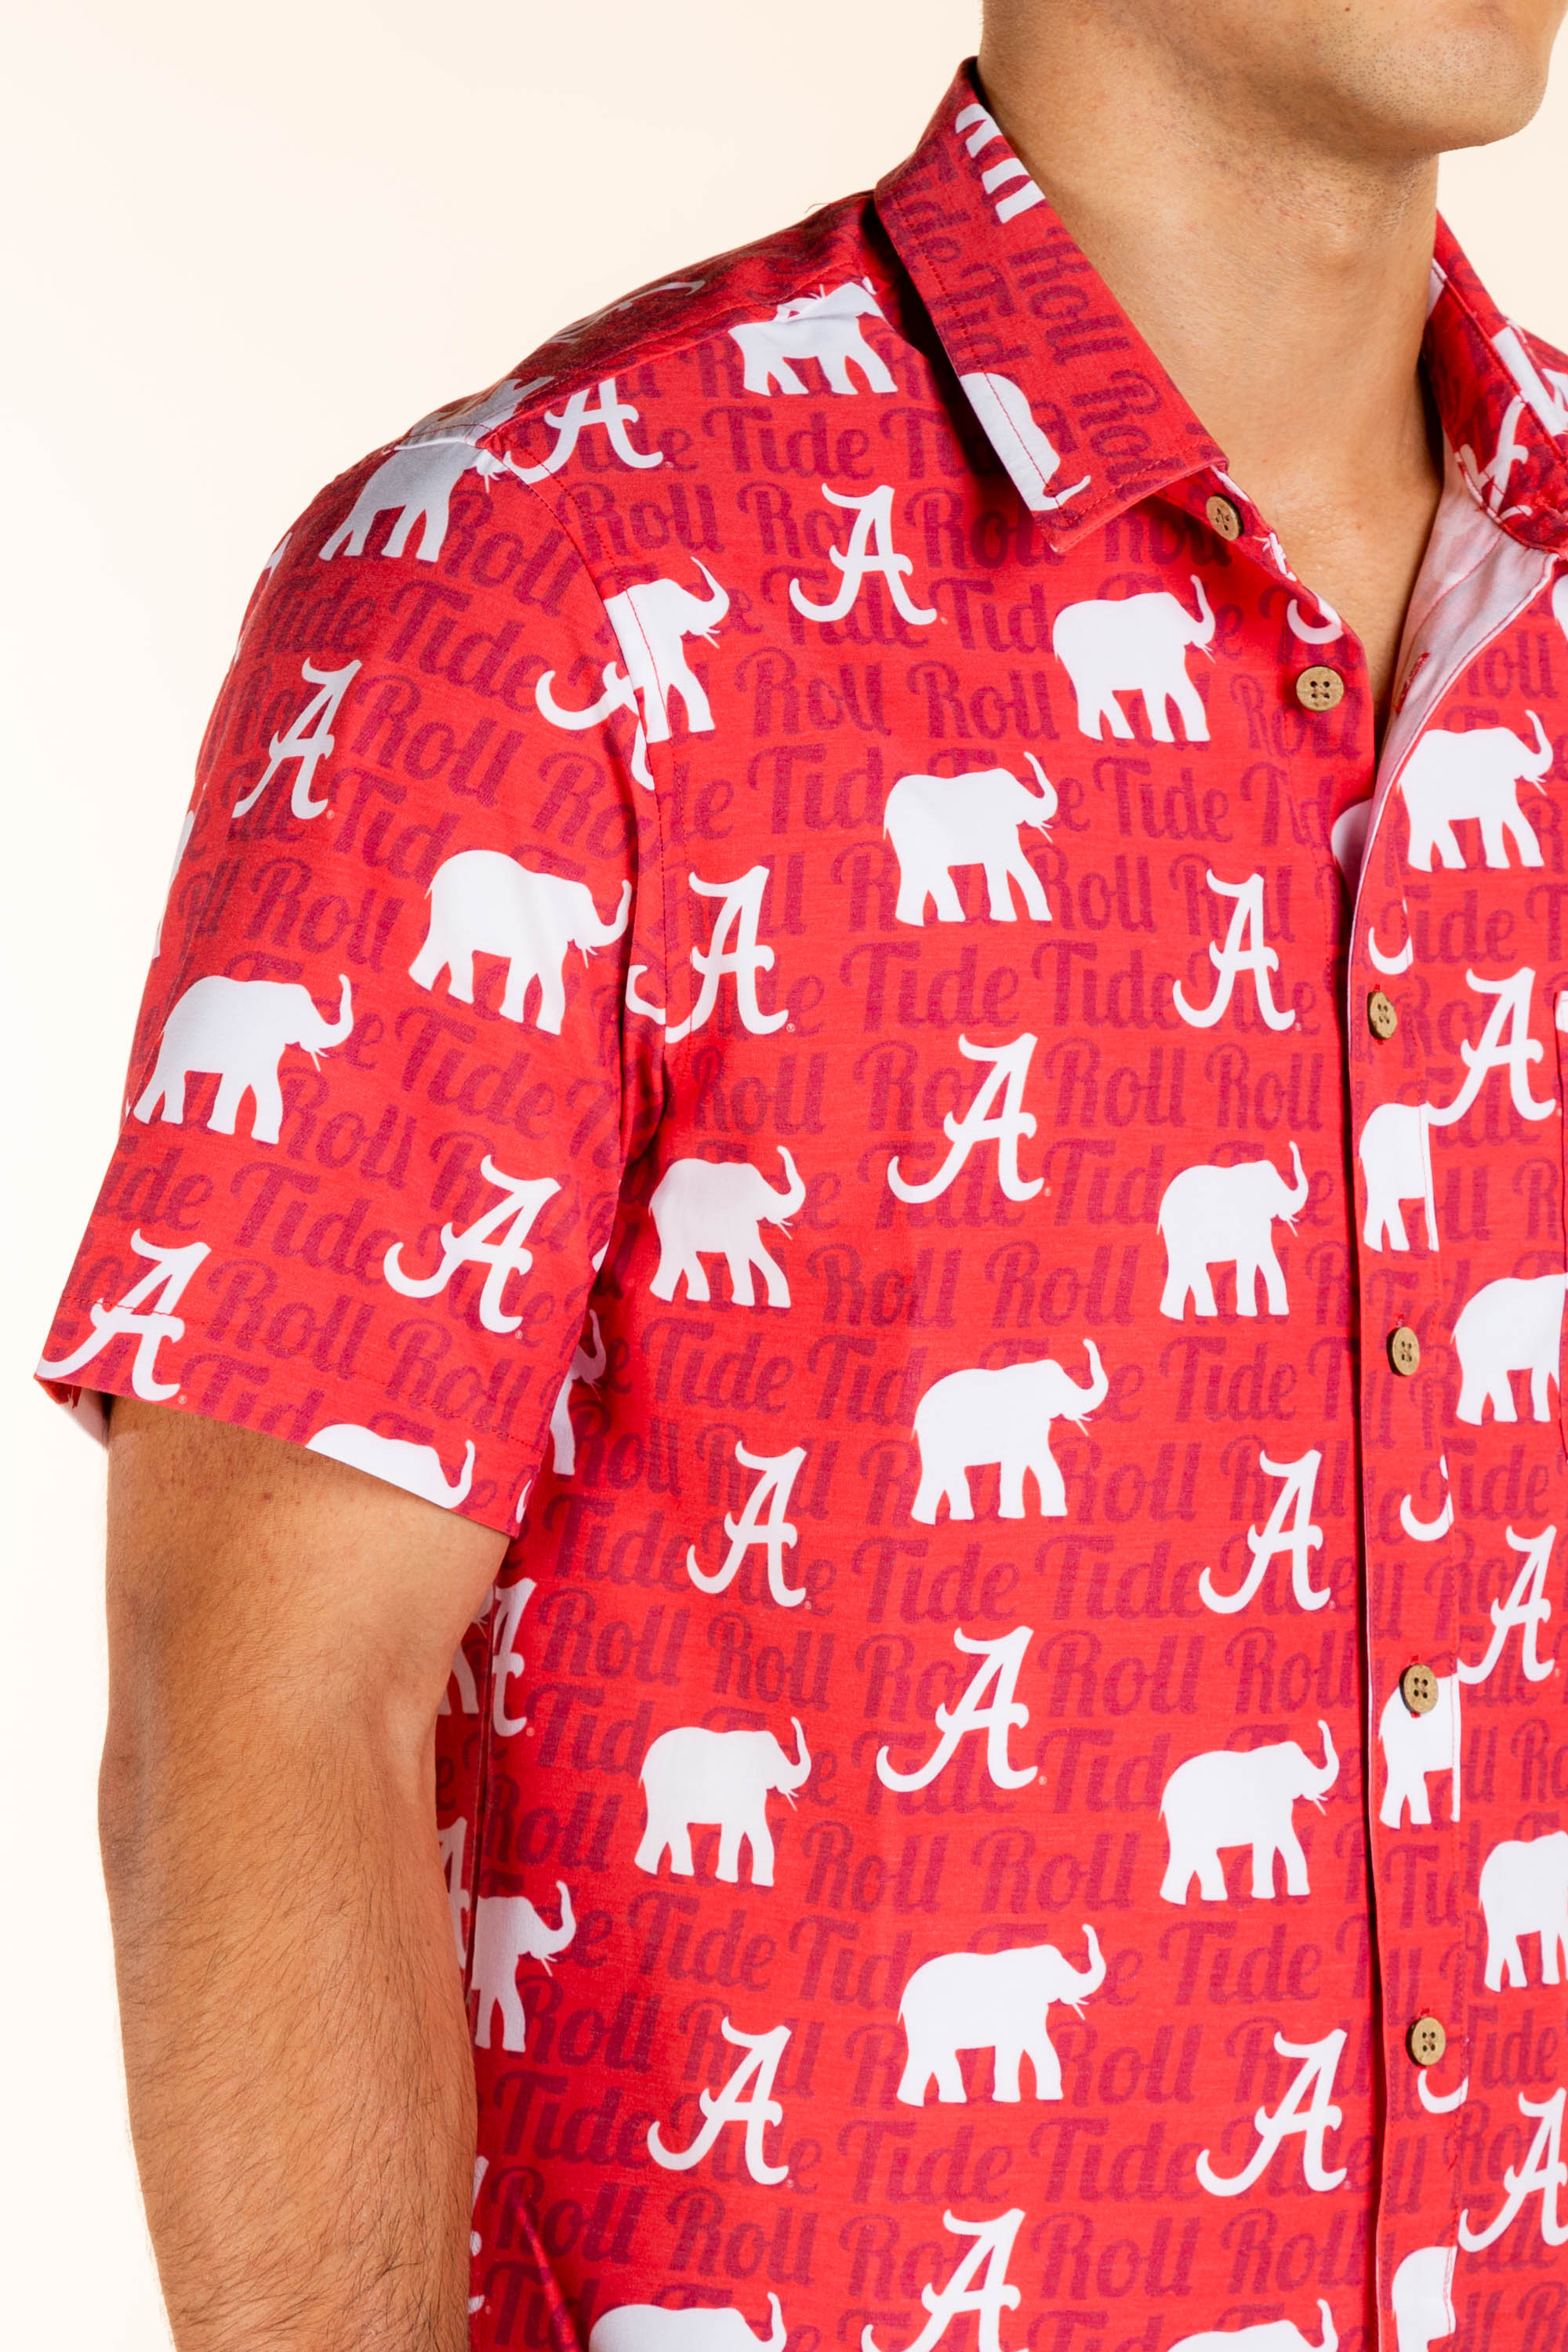 University of Alabama Tailgating Shirt